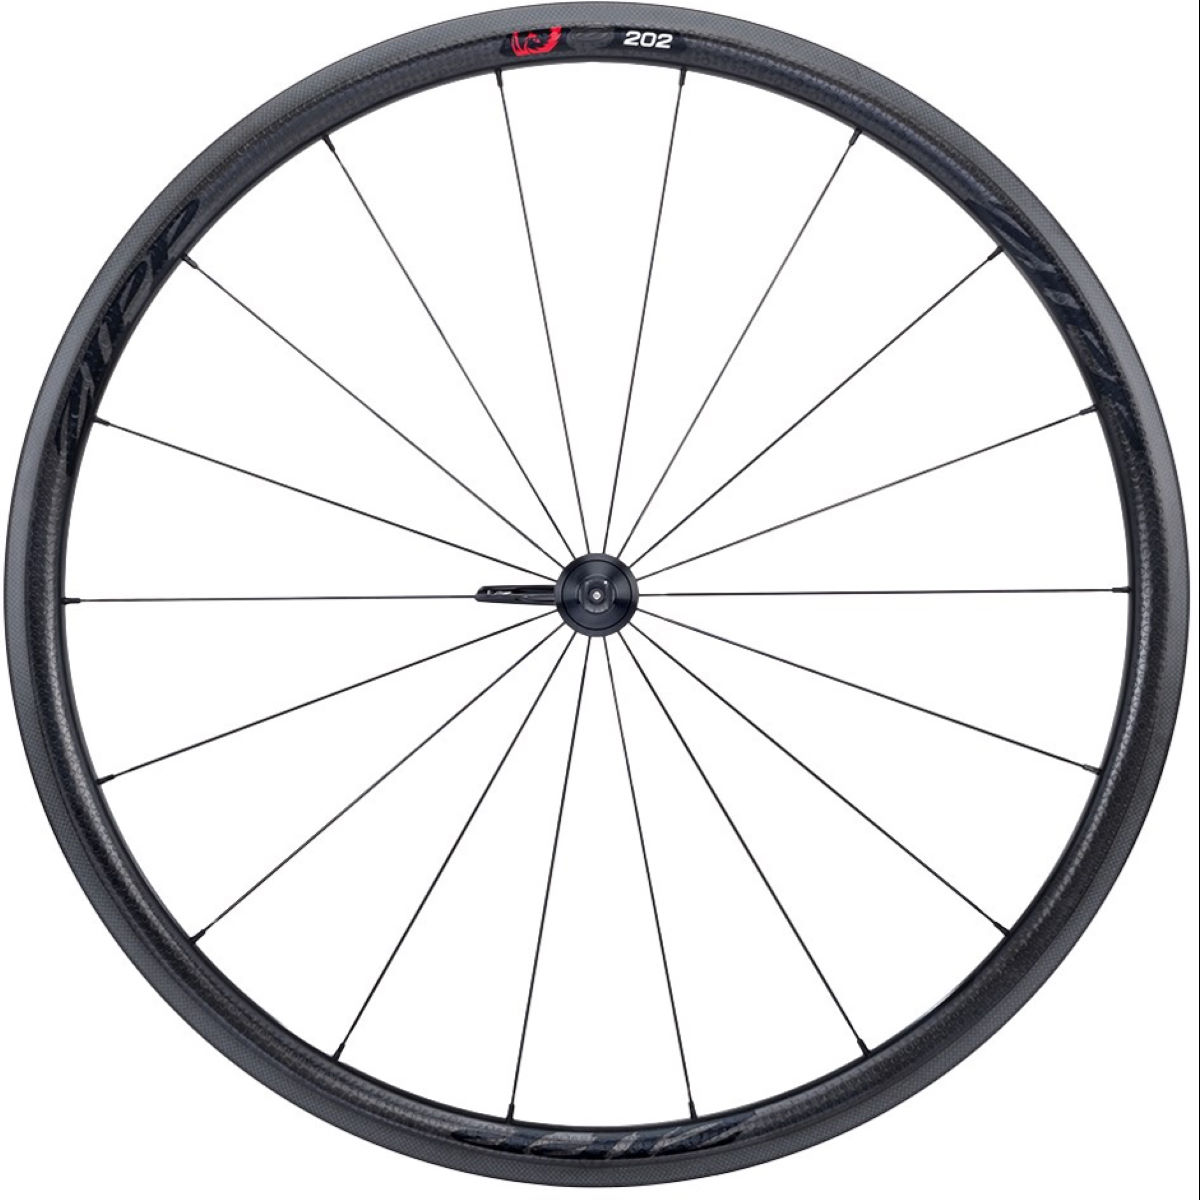 Roue avant Zipp 202 Firecrest (carbone, tringle) - 700c - Clincher